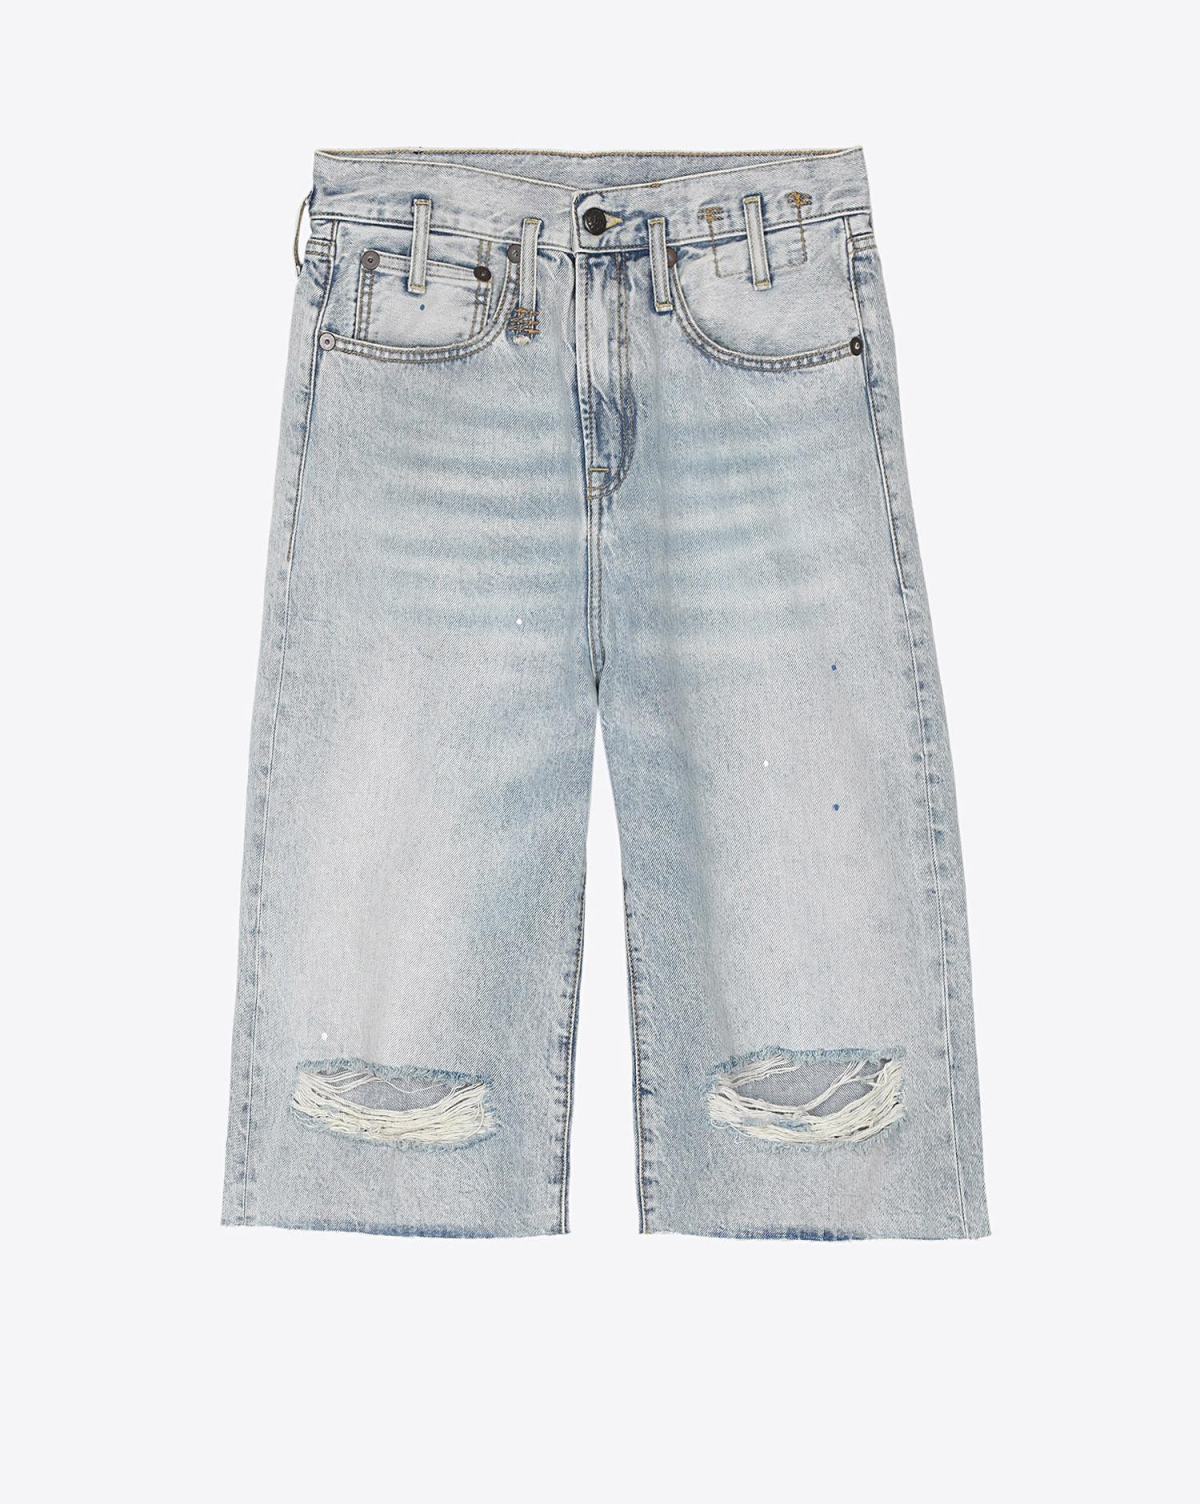 R13 Denim Collection Paperbag Short - Mercer